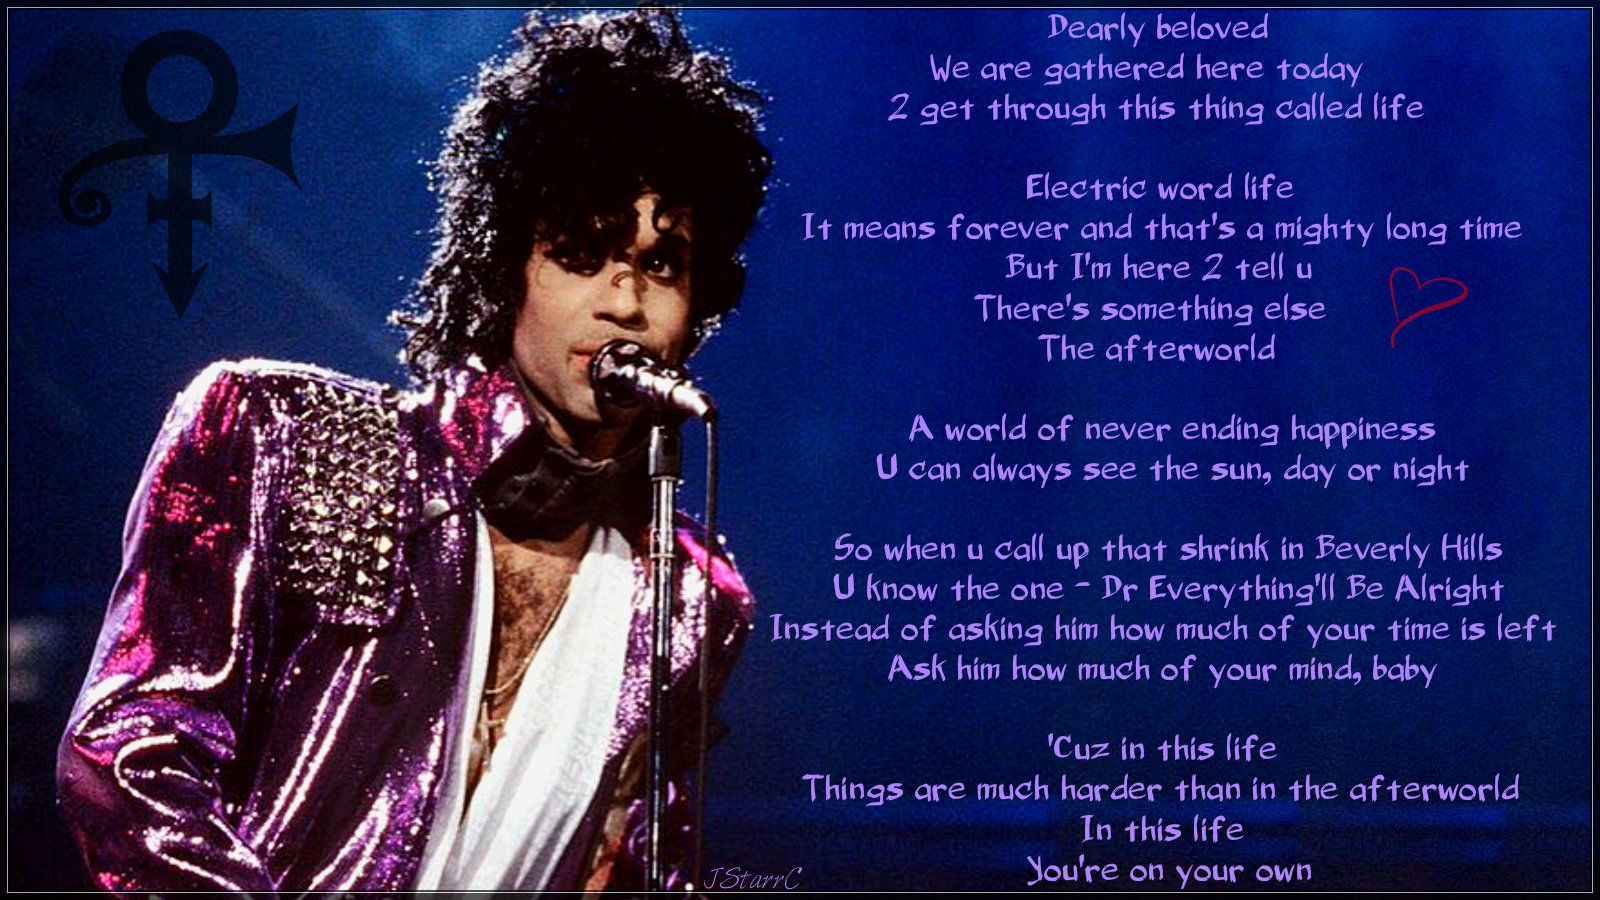 Purple rain images prince hd wallpaper and background - Prince wallpaper ...